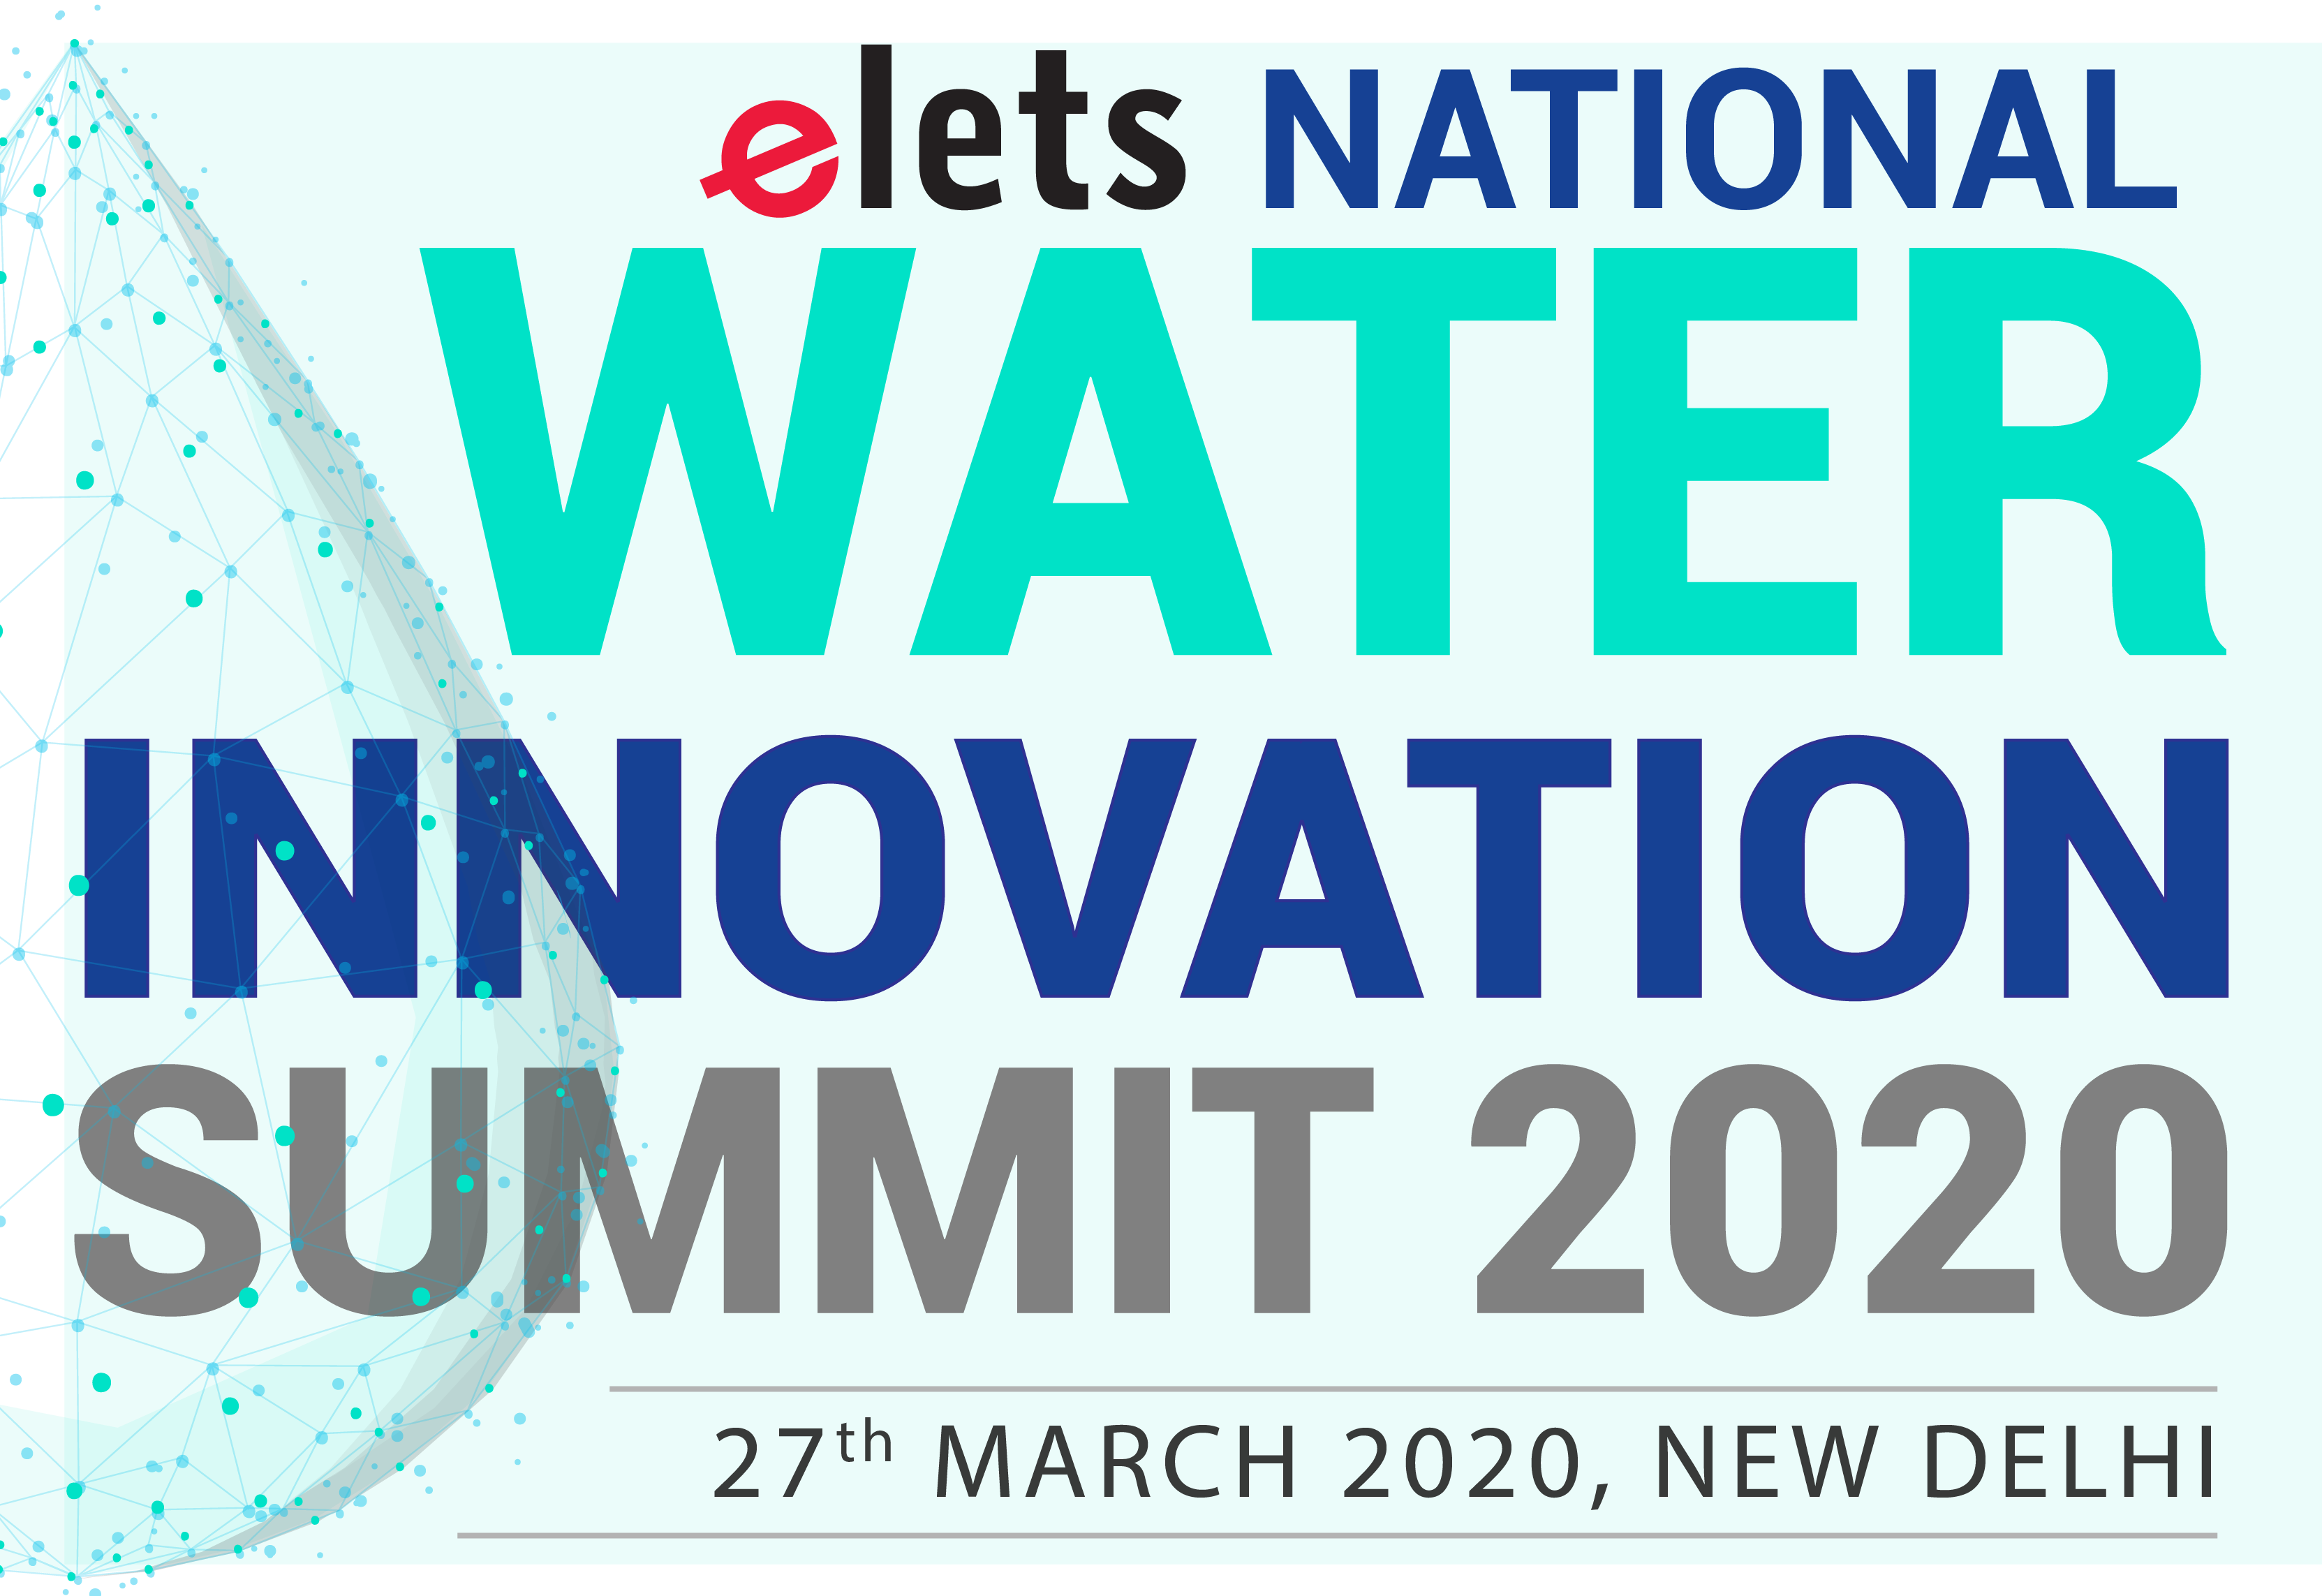 National Water Innovation Summit 2020